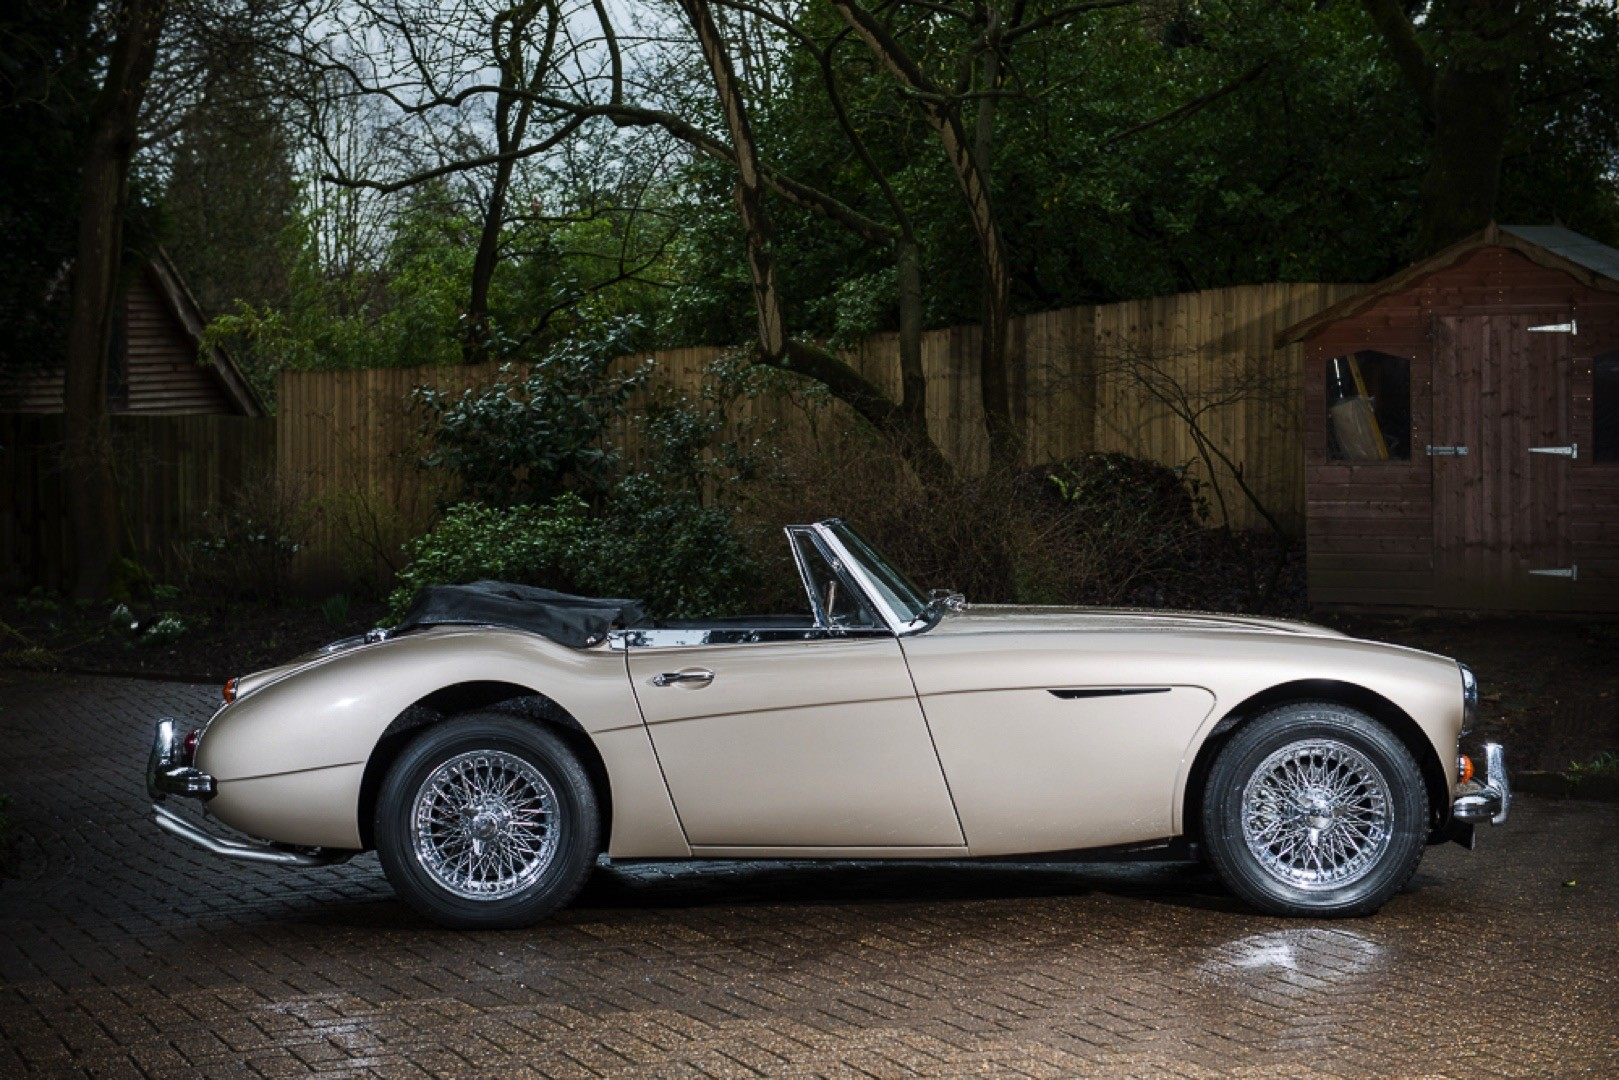 The Last Austin Healey 3000 Mk Iii Ever Produced Heads To